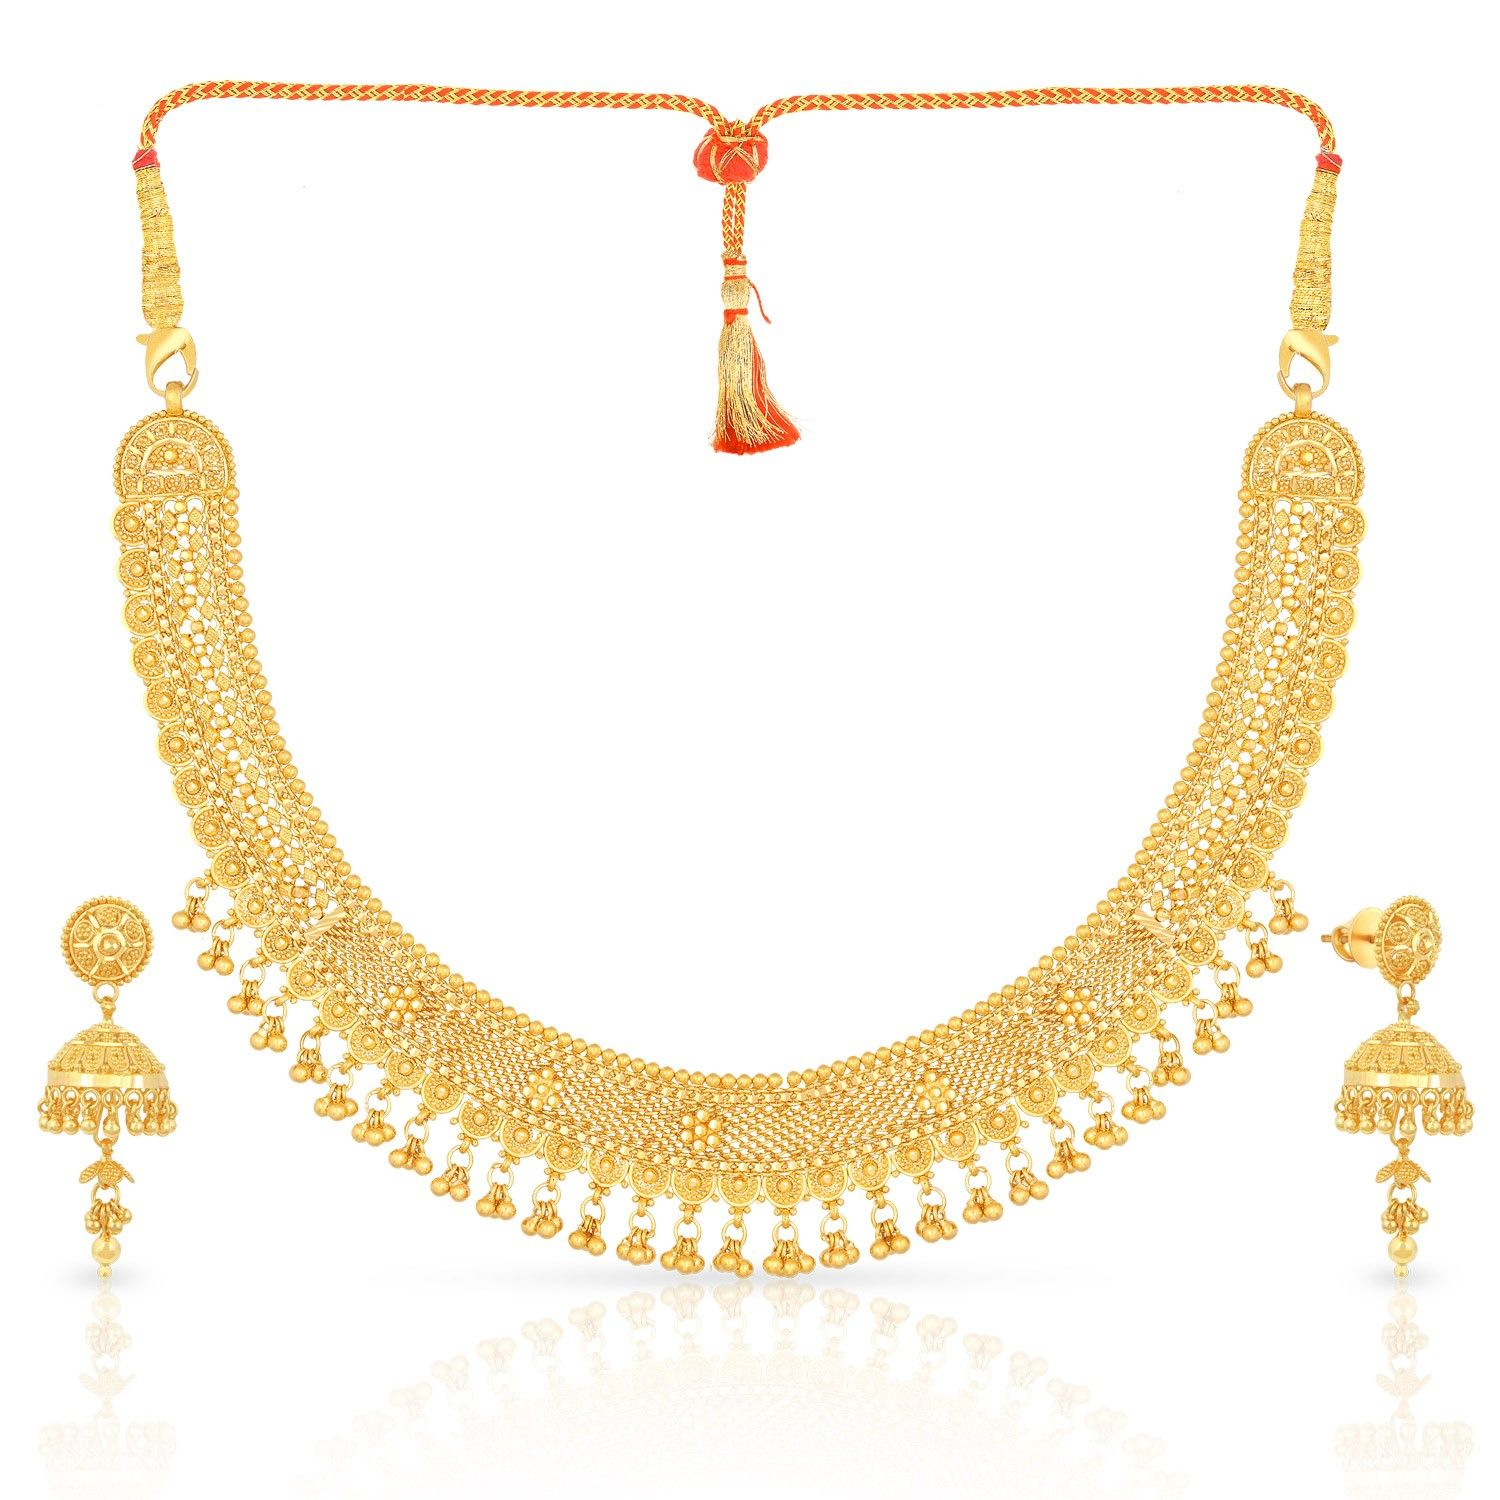 malabar gold necklace set mhaaaacplblj blings baubles. Black Bedroom Furniture Sets. Home Design Ideas